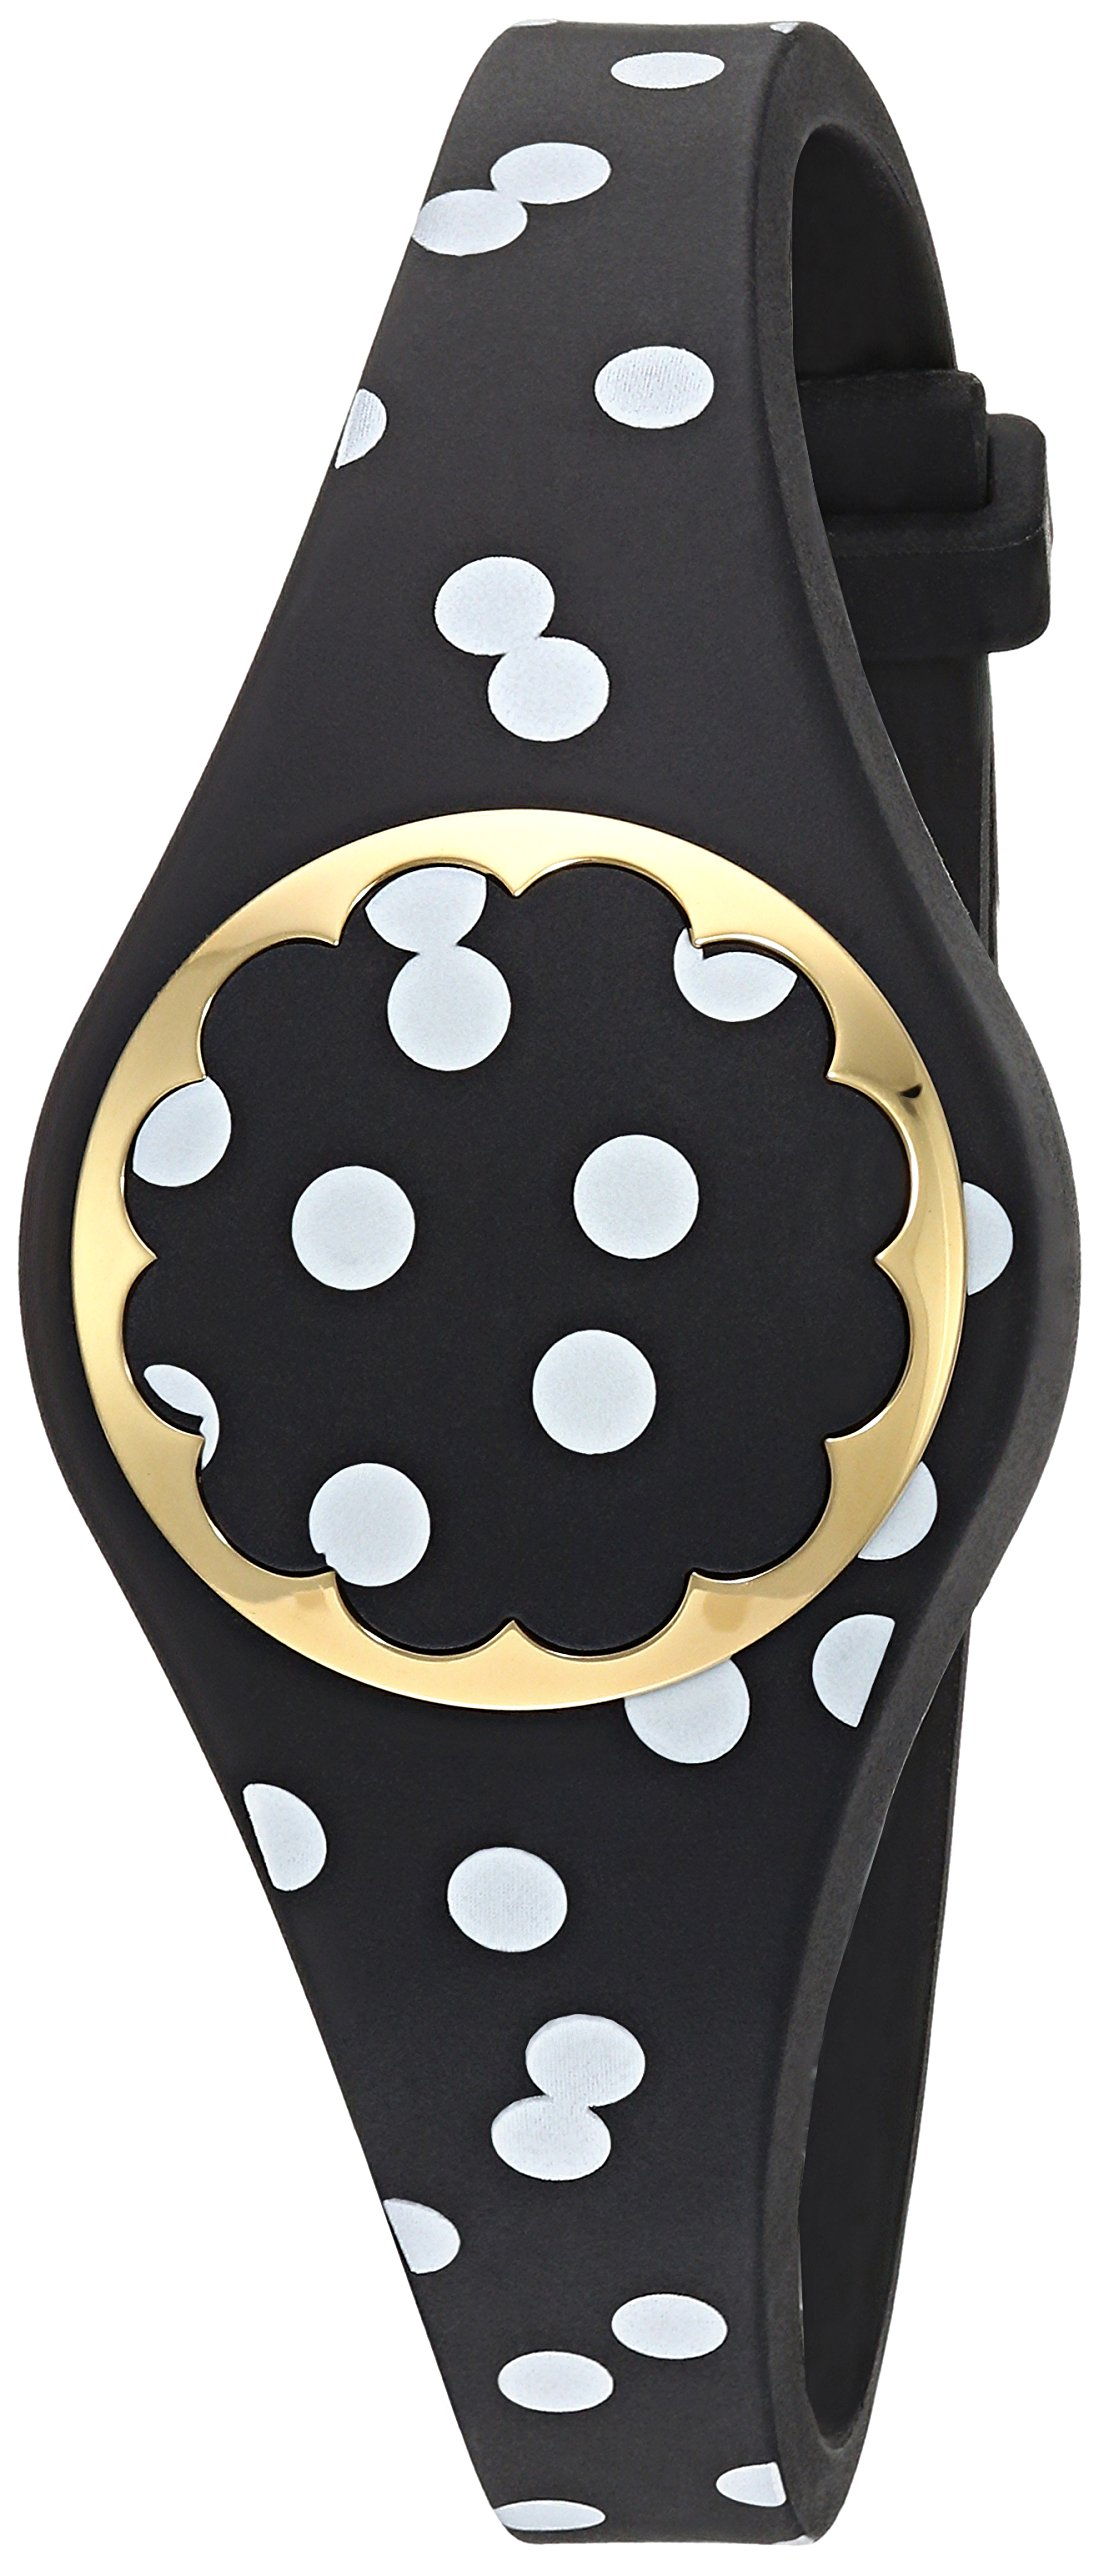 Kate Spade New York black and white dot scallop activity tracker by Kate Spade New York (Image #2)